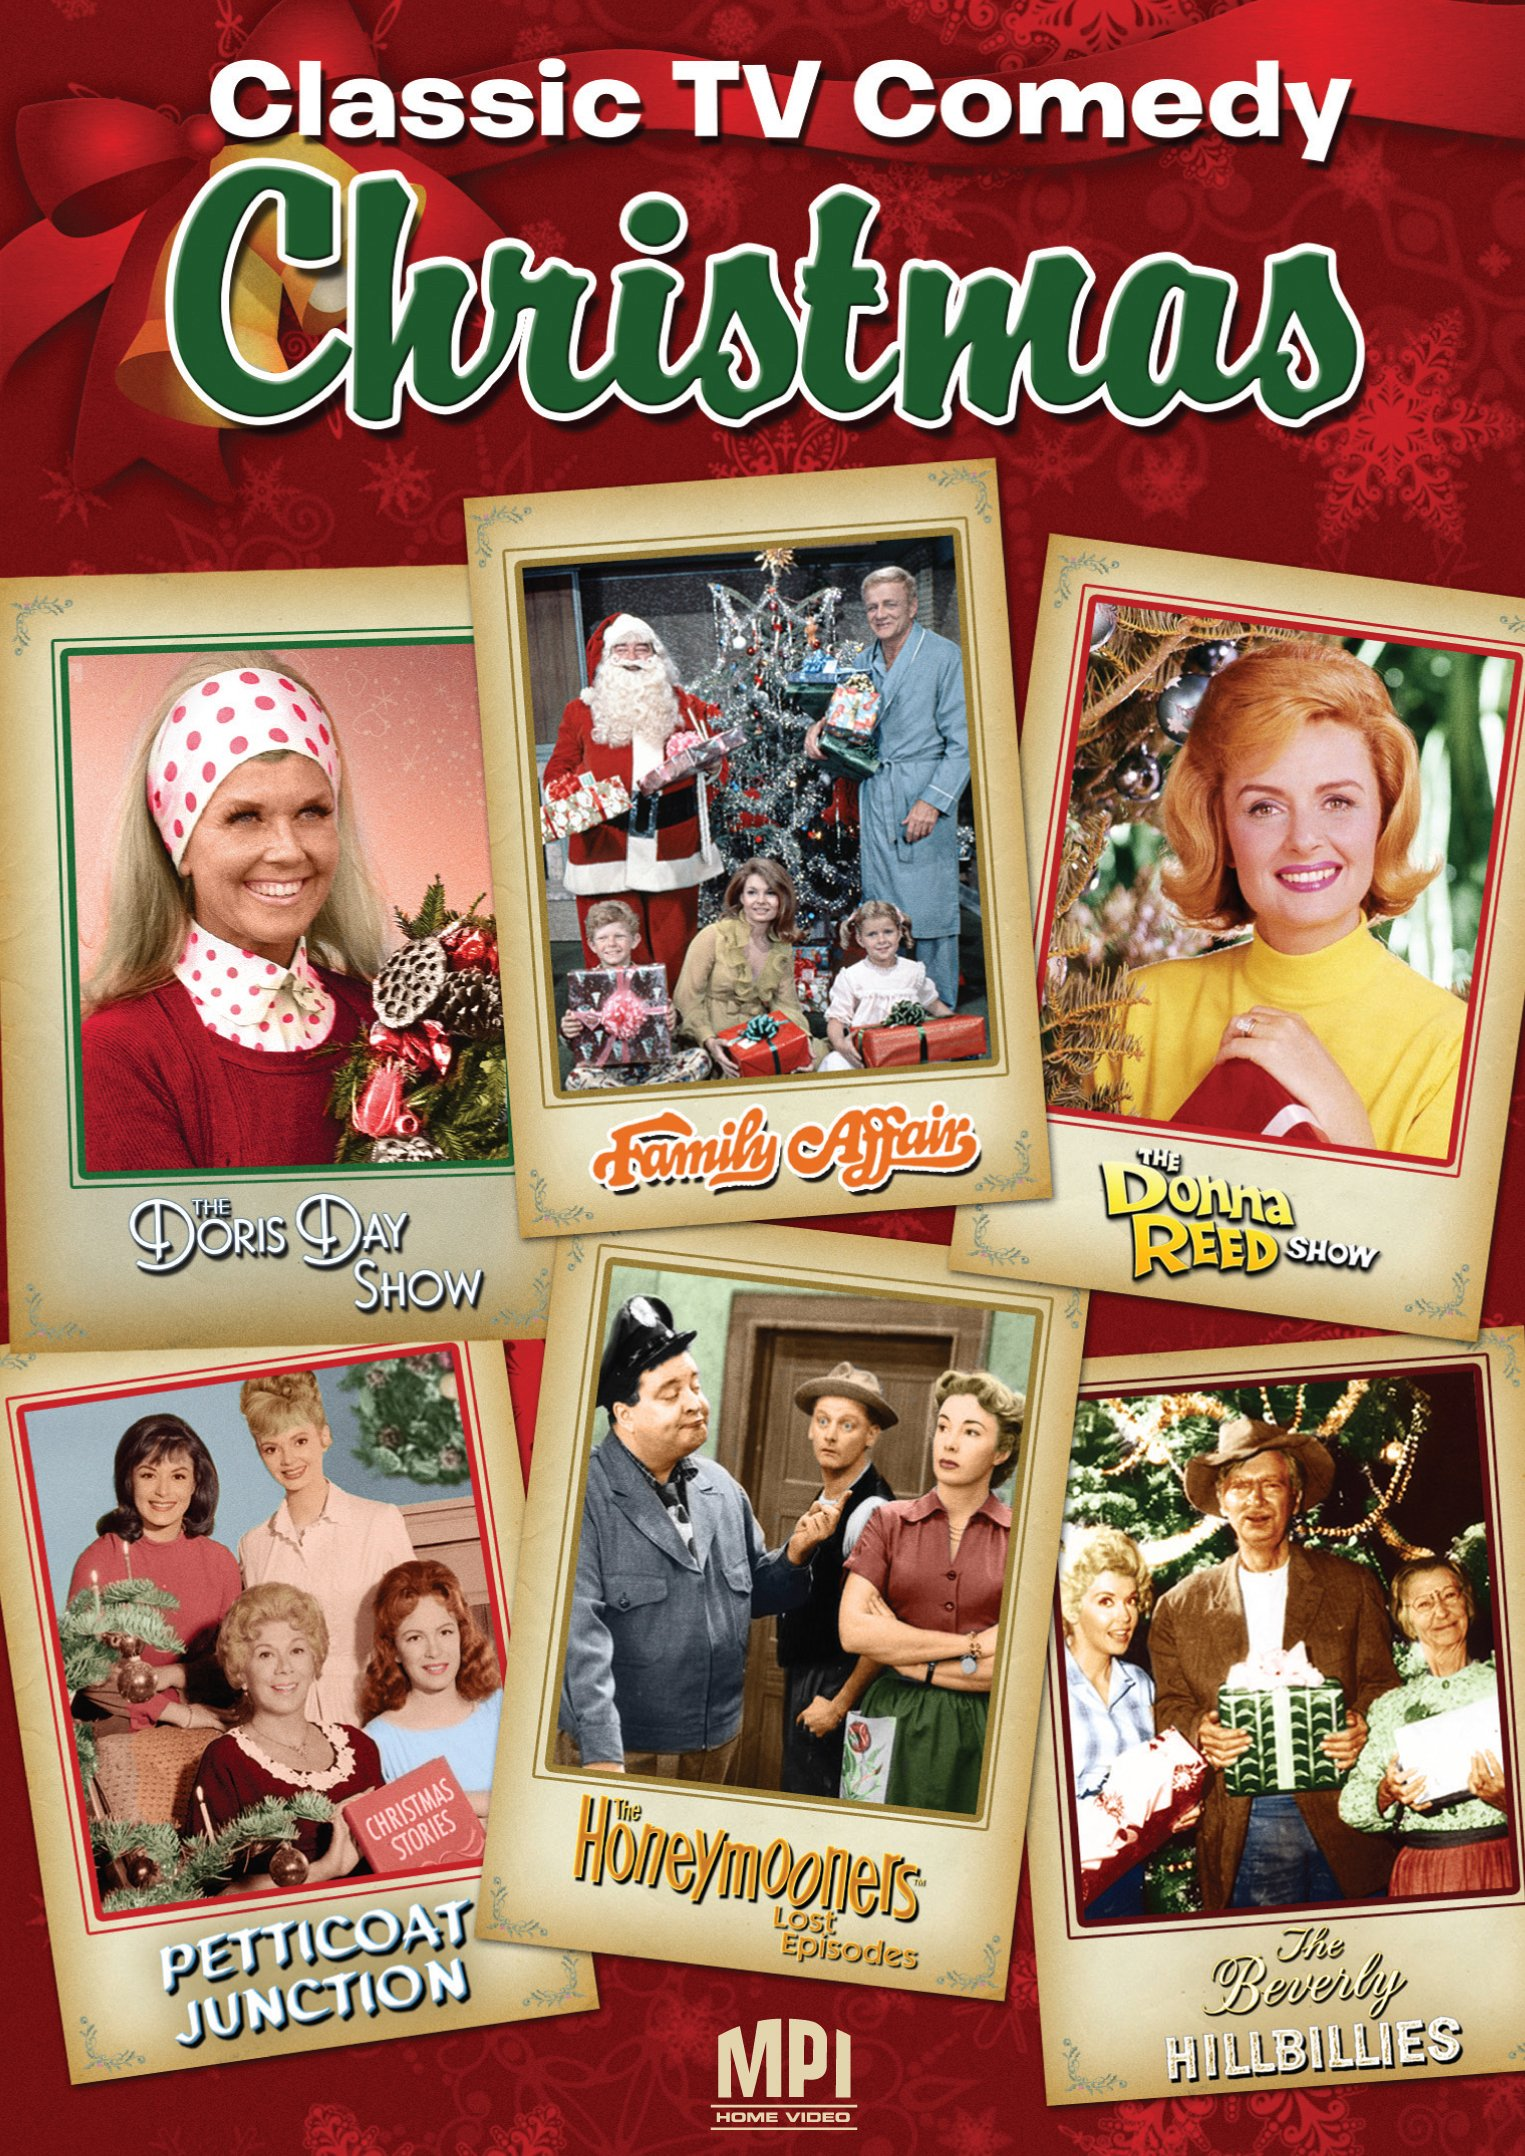 CELEBRATE THE HOLIDAYS WITH FAVORITE TV FAMILIES FROM SIX BELOVED SITCOMS! 'Tis the season to sit back and enjoy old friends from years past with this warm and wonderful collection of yuletide episodes. CLASSIC TV COMEDY CHRISTMAS features the following hit series: THE LOST HONEYMOONERS: Christmas Party (1953) Starring Jackie Gleason, Art Carney, Audrey Meadows & Joyce Randolph THE DONNA REED SHOW: A Very Merry Christmas (1958) Starring Donna Reed, Carl Betz, Shelley Fabares, Paul Petersen & FAMILY AFFAIR: Christmas Came A Little Early (1968) Starring Brian Keith, Johnny Whittaker, Anissa Jones, Kathy Garver, Sebastian Cabot & Eve Plumb PETTICOAT JUNCTION: Cannonball Christmas (1963) Starring Bea Benaderet, Edgar Buchanan, Linda Kaye Henning, Jeannine Riley, Pat Woodell & Charles Lane THE BEVERLY HILLBILLIES: Home For Christmas (1962) Starring Buddy Ebsen, Irene Ryan, Donna Douglas, Max Baer, Jr. & Bea Benaderet THE DORIS DAY SHOW: It's Christmas Time In The City (1970) Starring Doris Day, McLean Stevenson, Rose Marie, Bernie Kopell, Kaye Ballard, Denver Pyle & Billy DeWolff